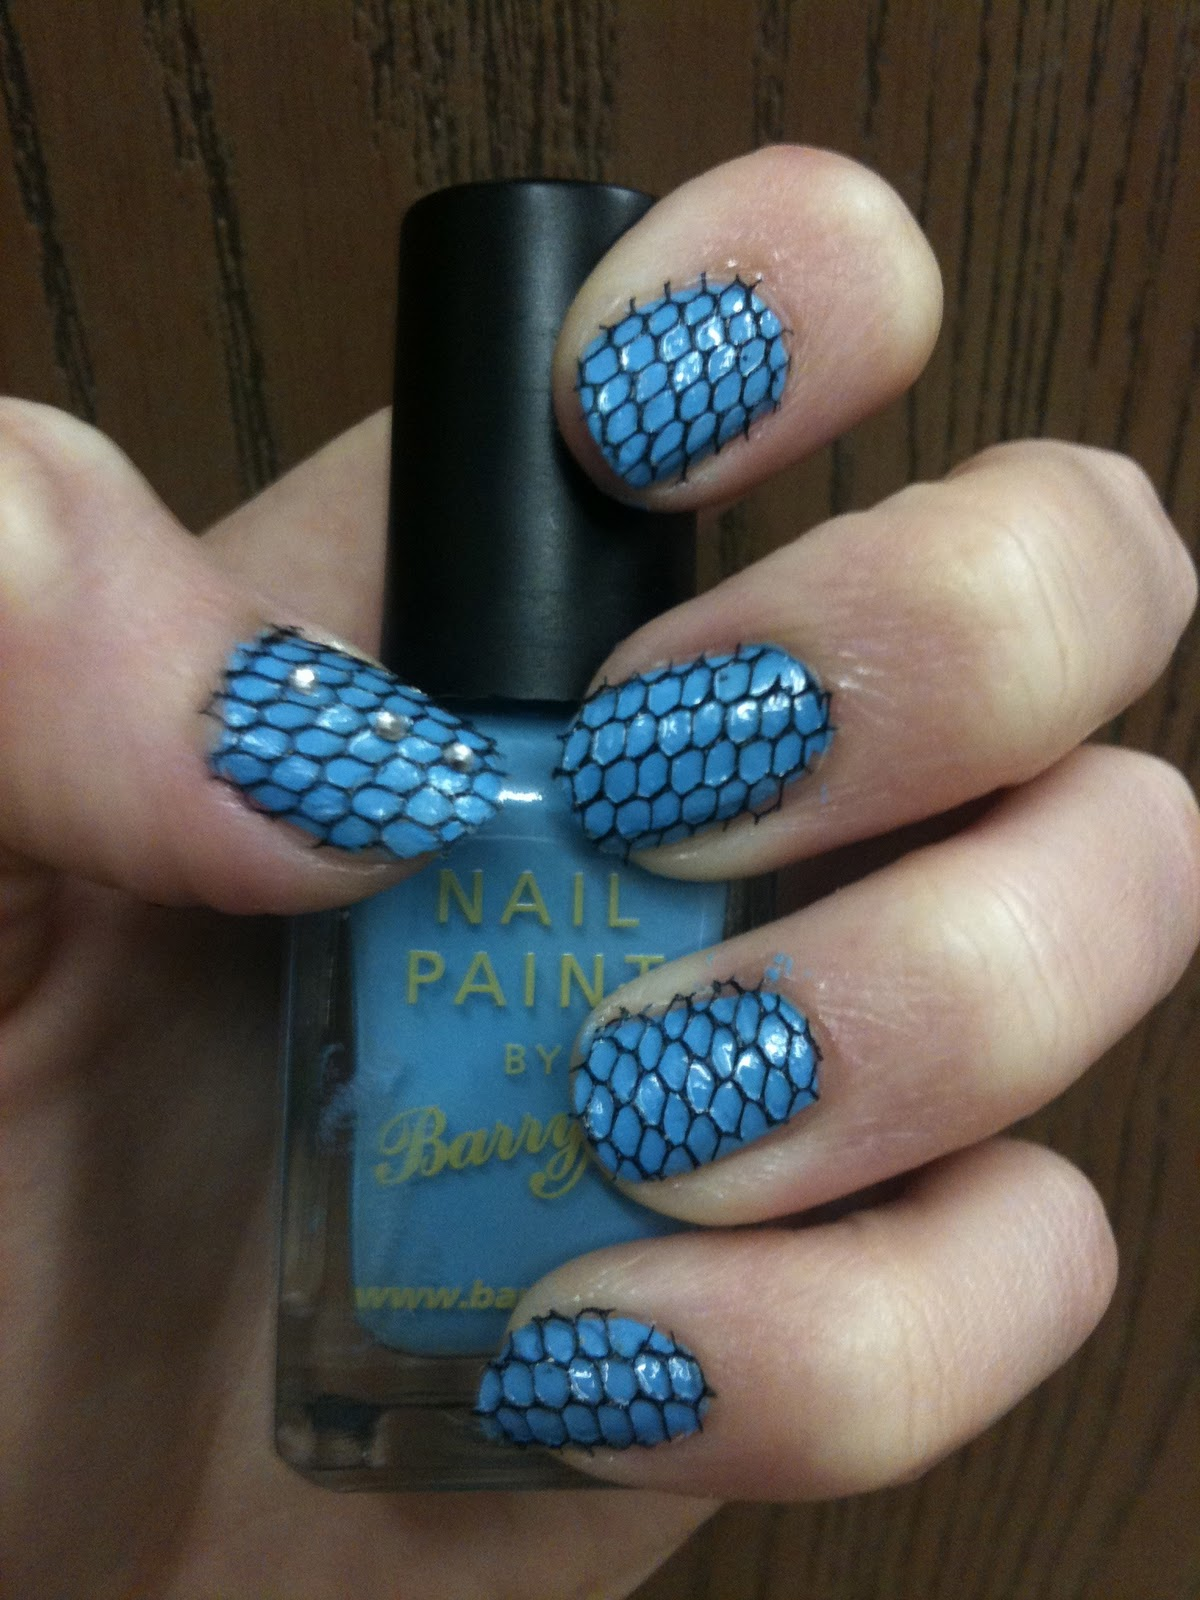 Handbags and Gladrags: Nail Art! Lace Netted Nails tutorial!